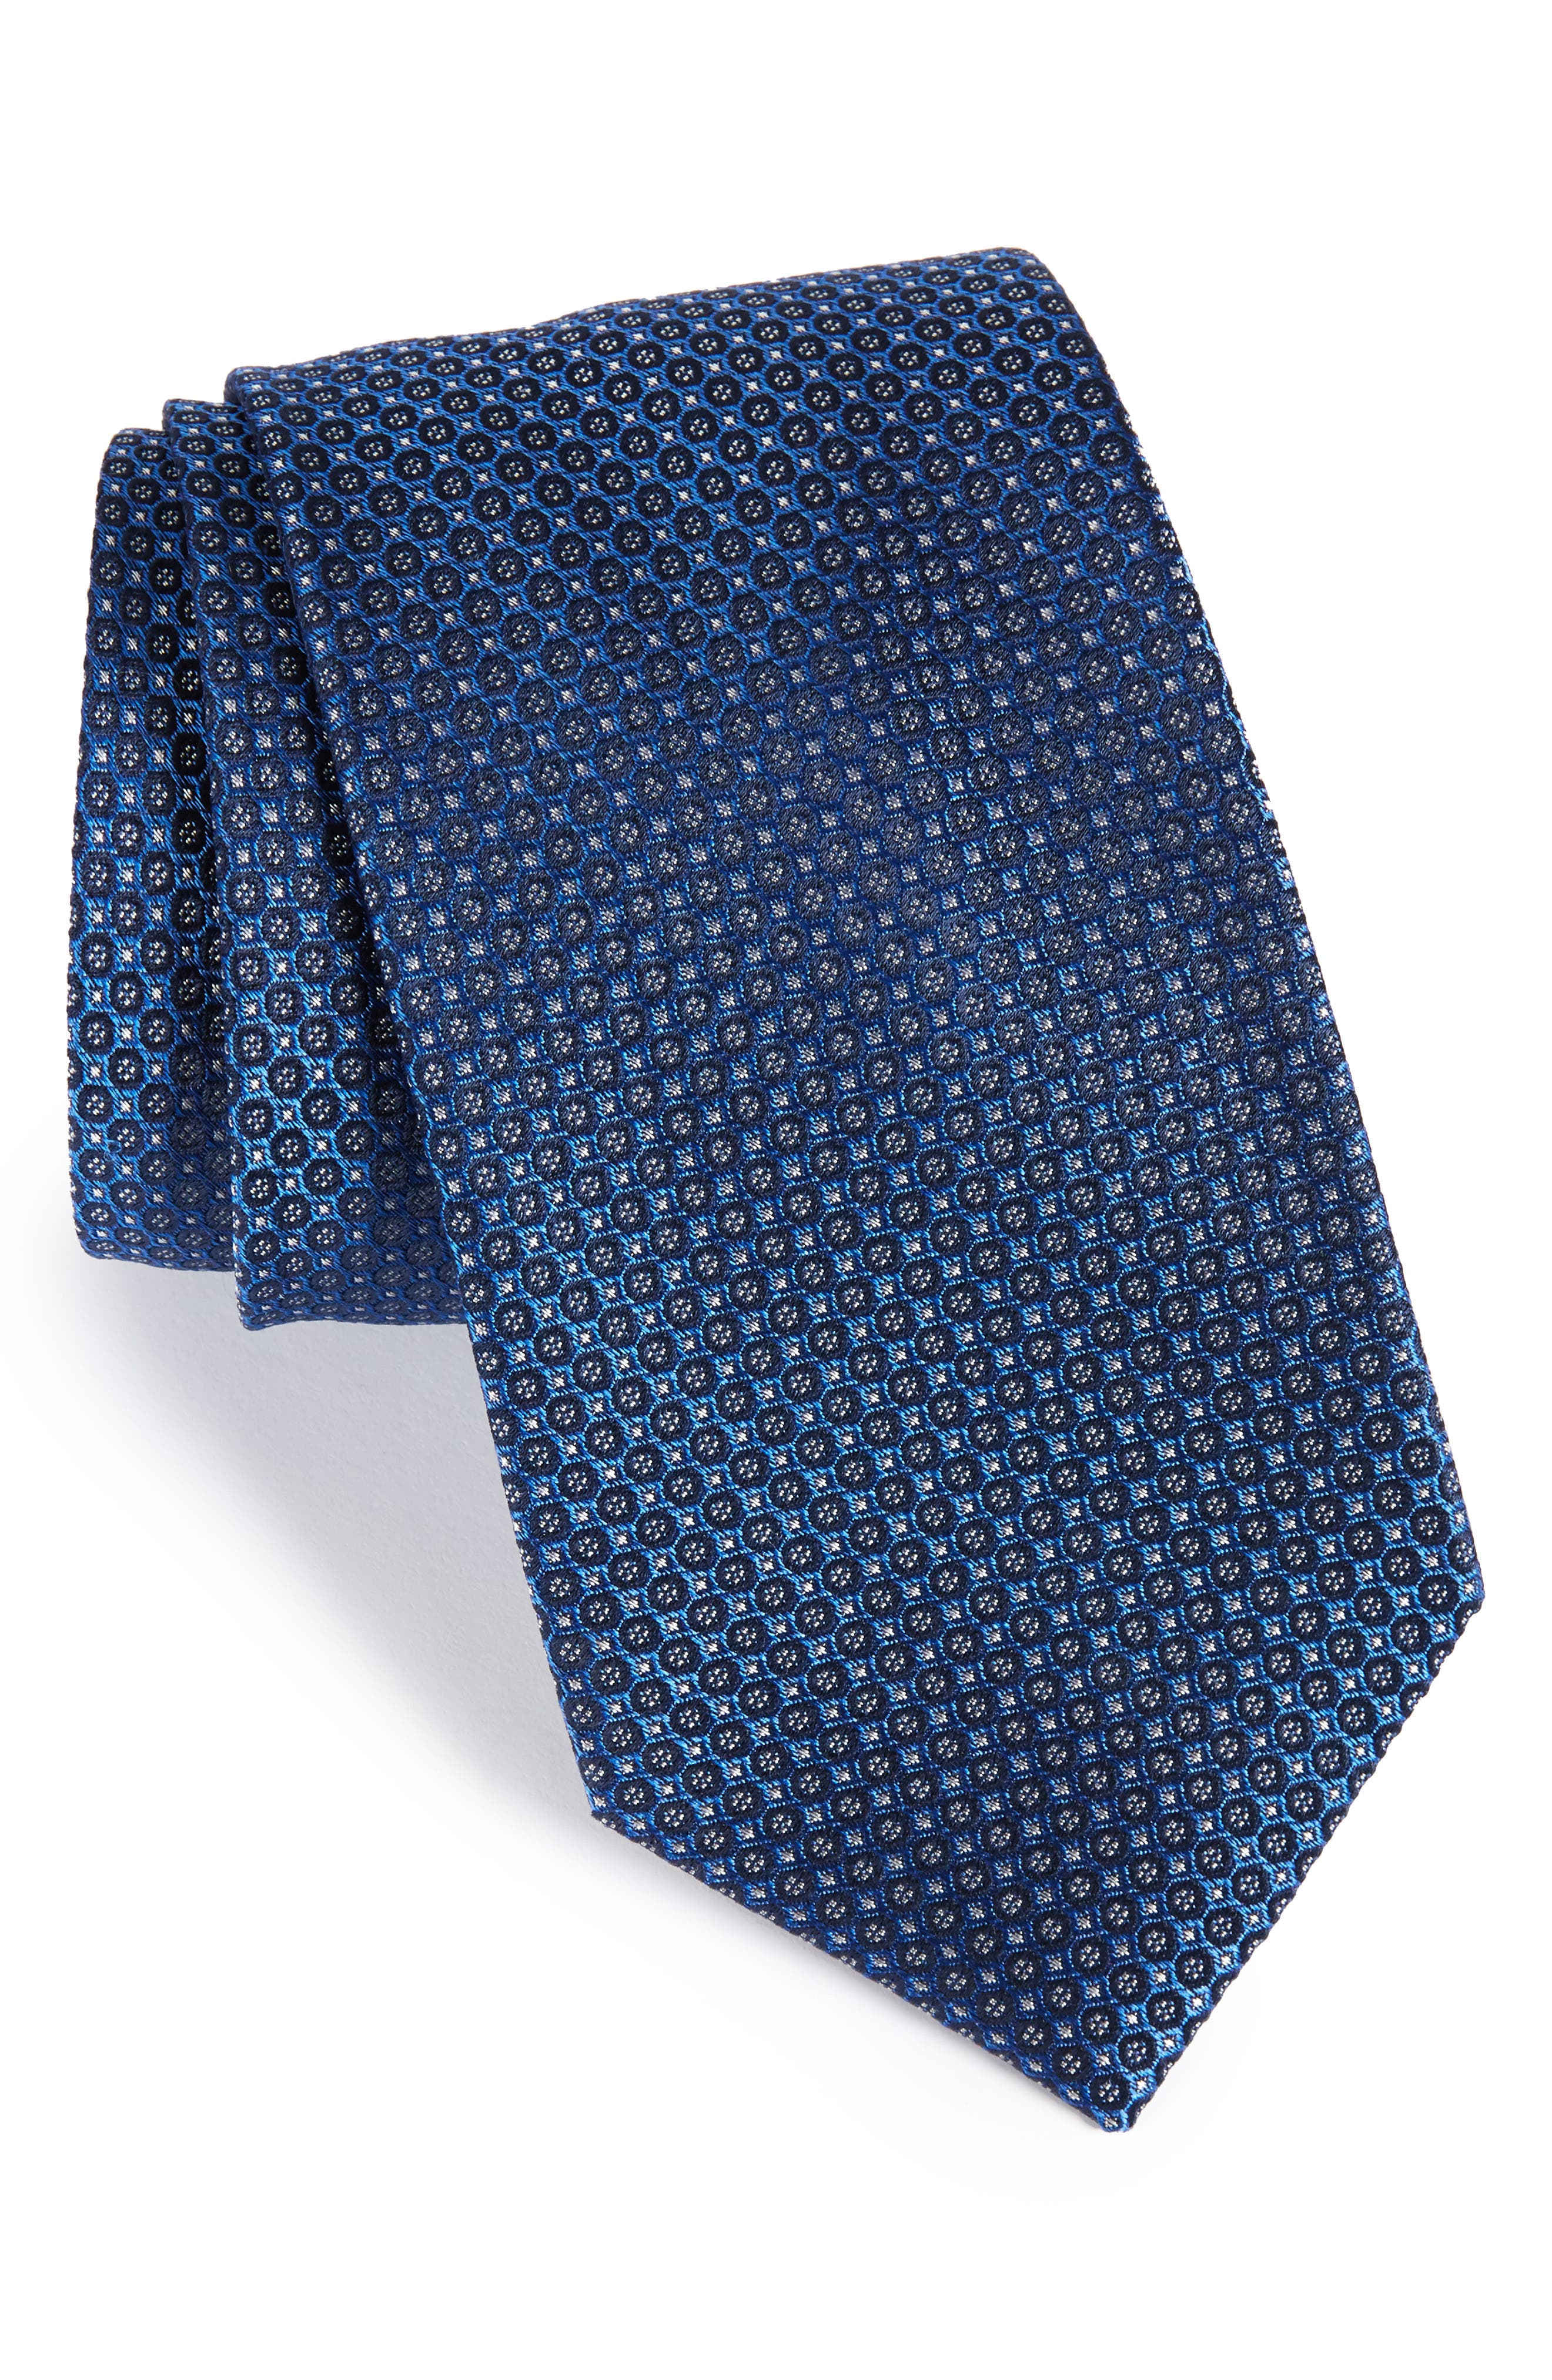 Park Ave Solid Silk Tie,                             Main thumbnail 2, color,